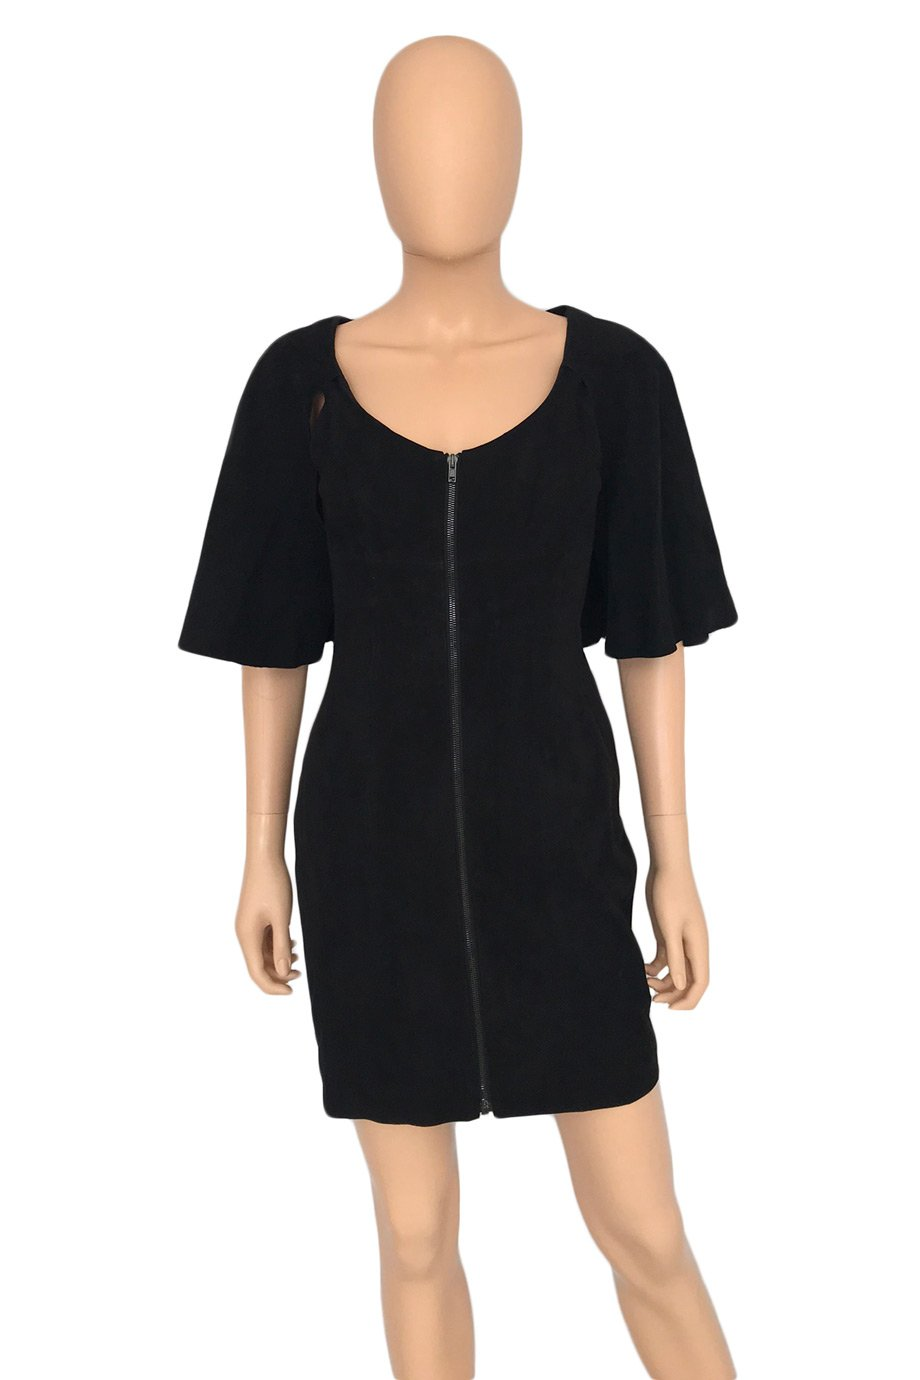 Alexander Wang Black Suede Zip-Front Cape Mini Dress / Sz 4-Style Therapy